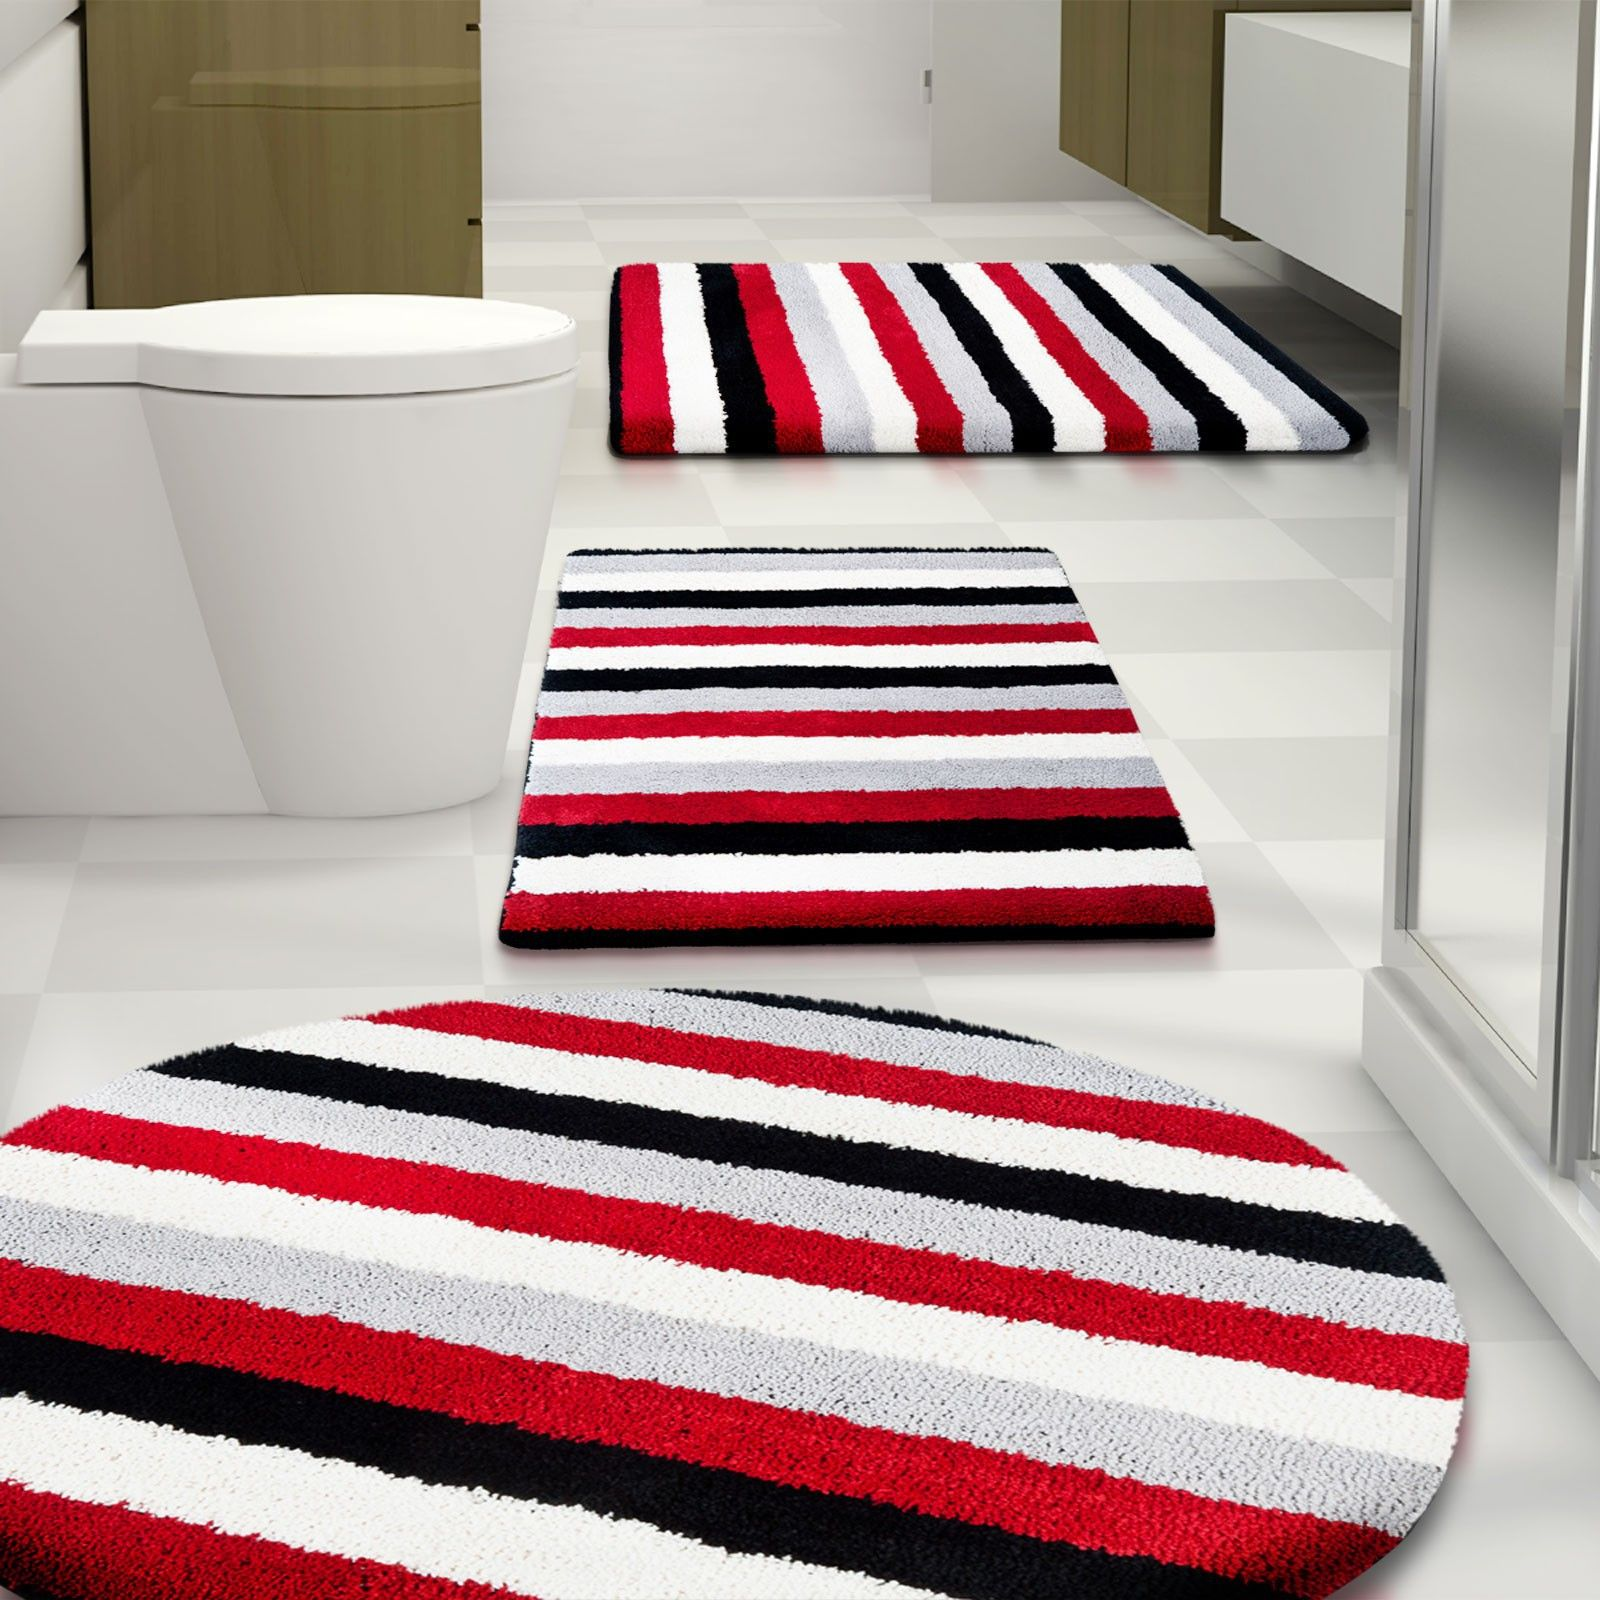 abyss bath the pin mosaic mats discover mat habidecor rugs at and rug amara